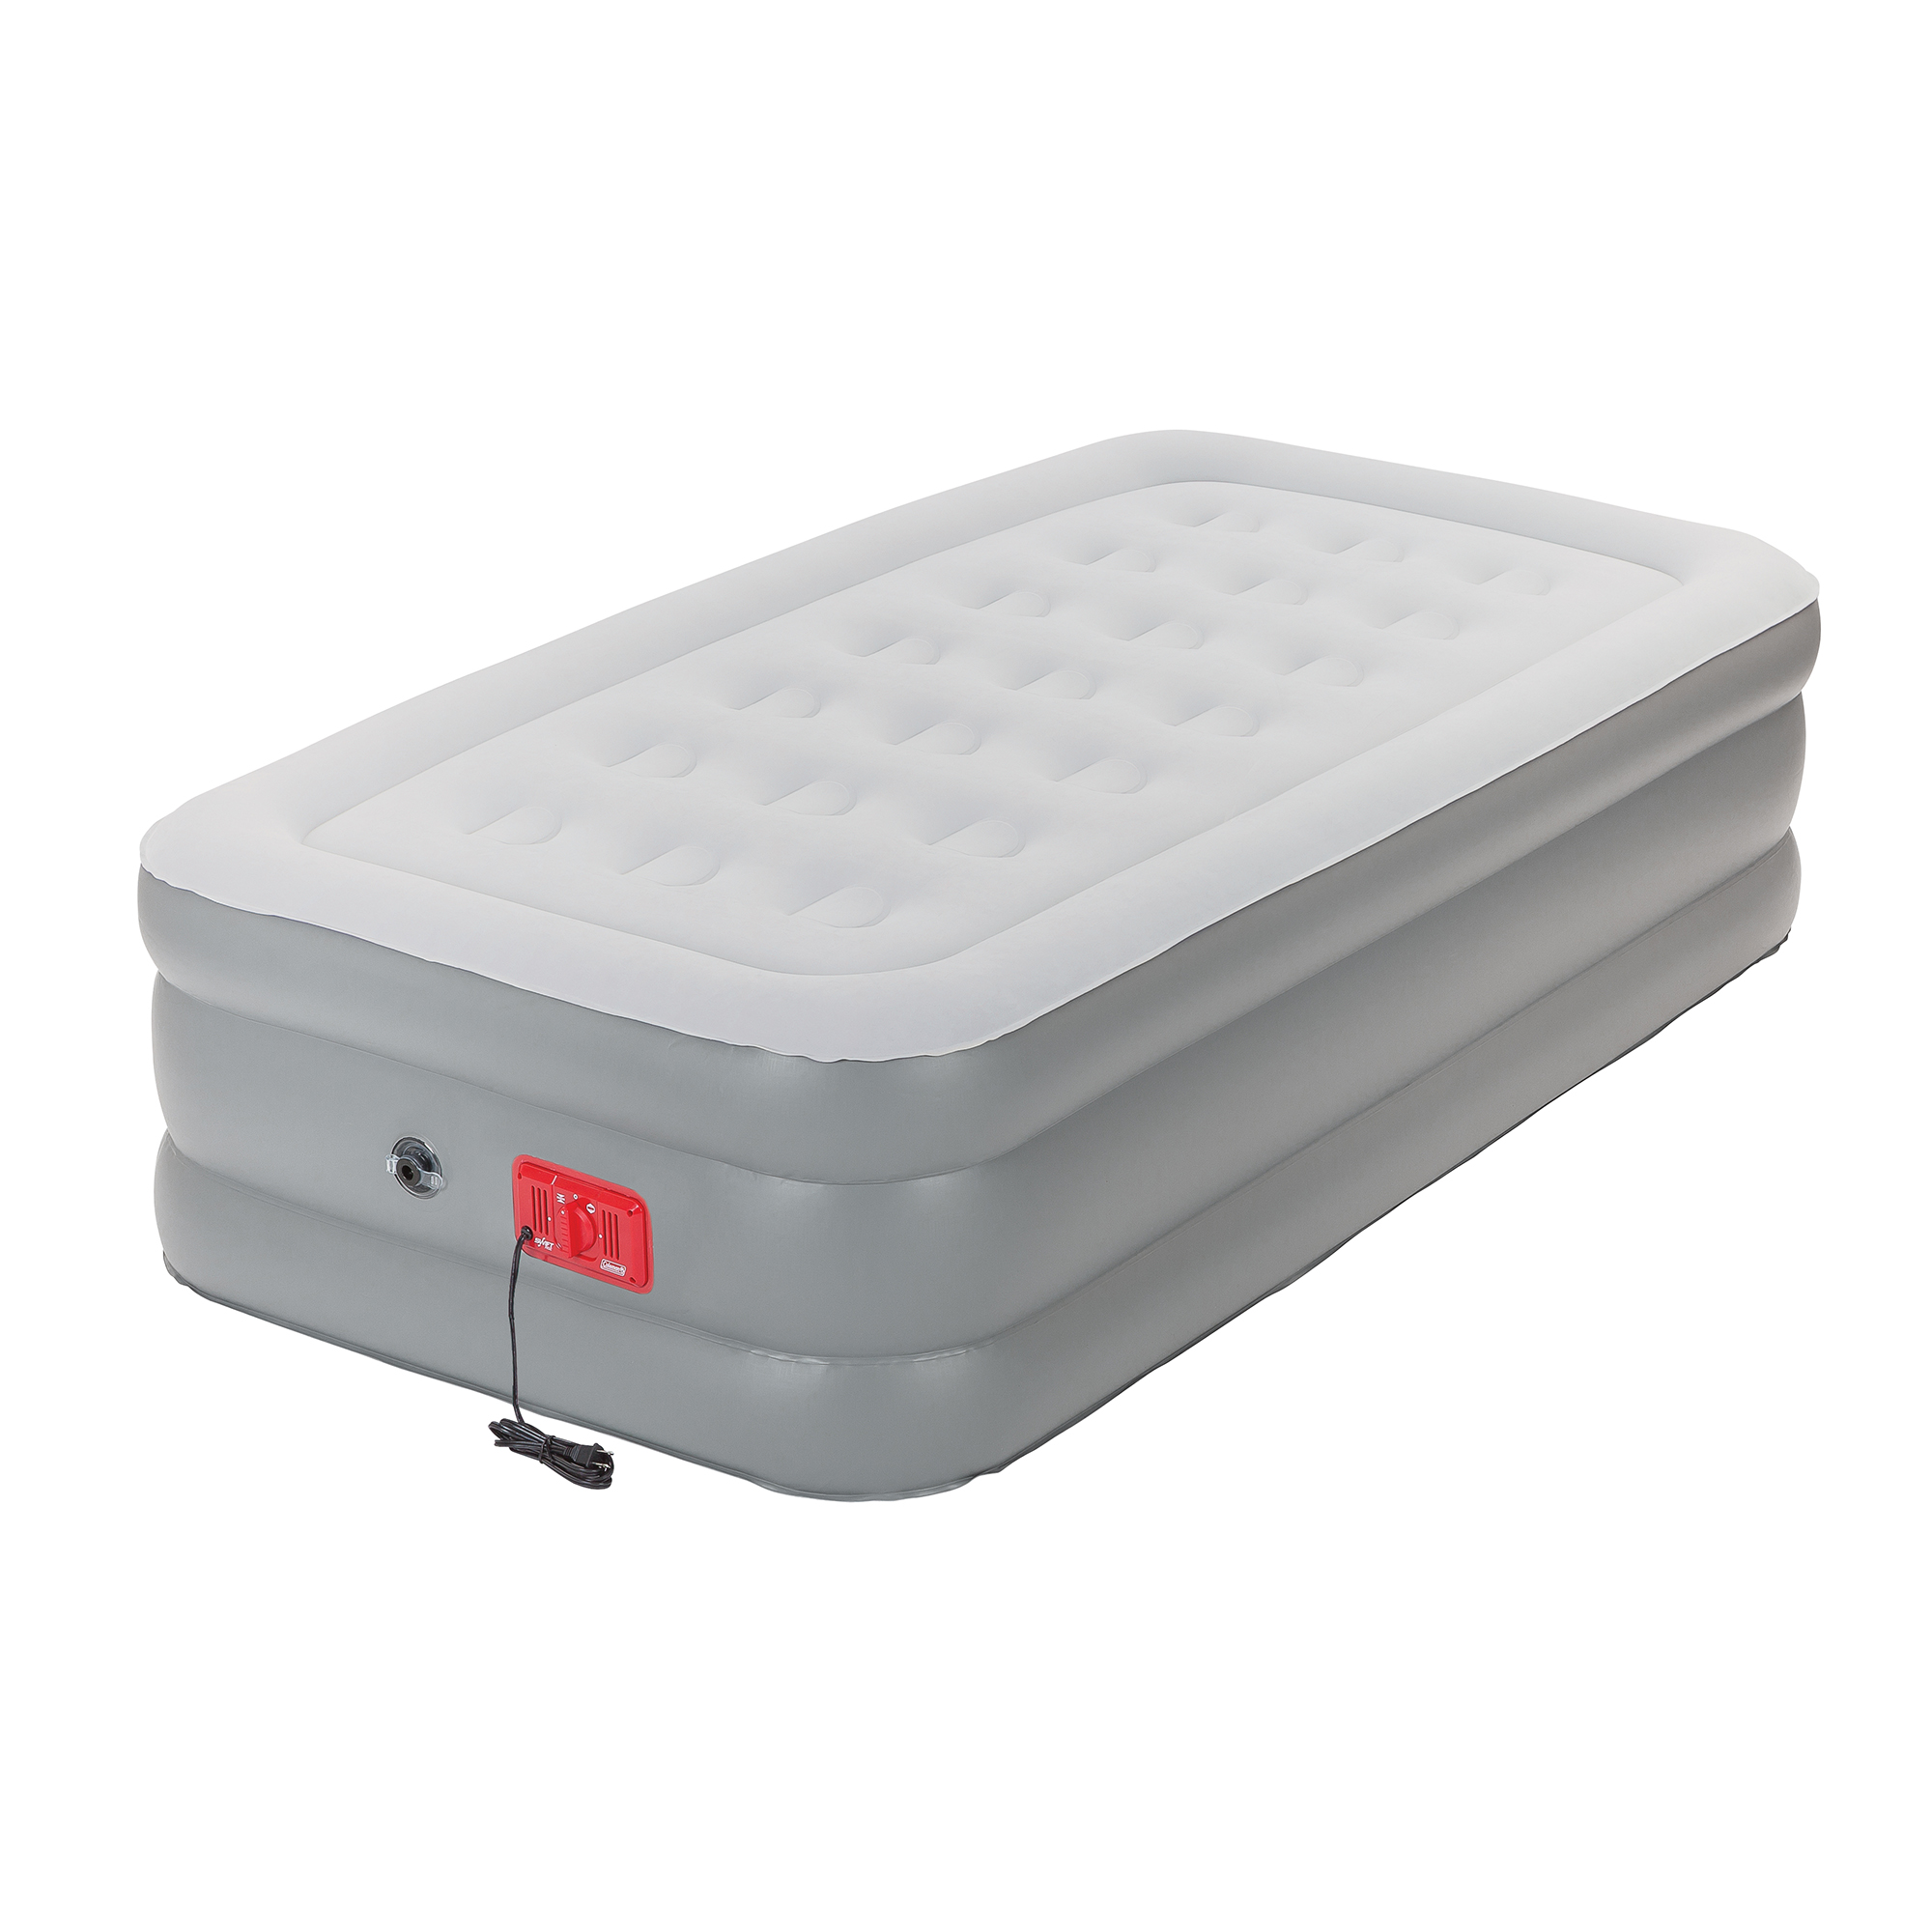 Coleman SupportRest Elite Double-High Inflatable Airbed with Built-In Pump, Twin